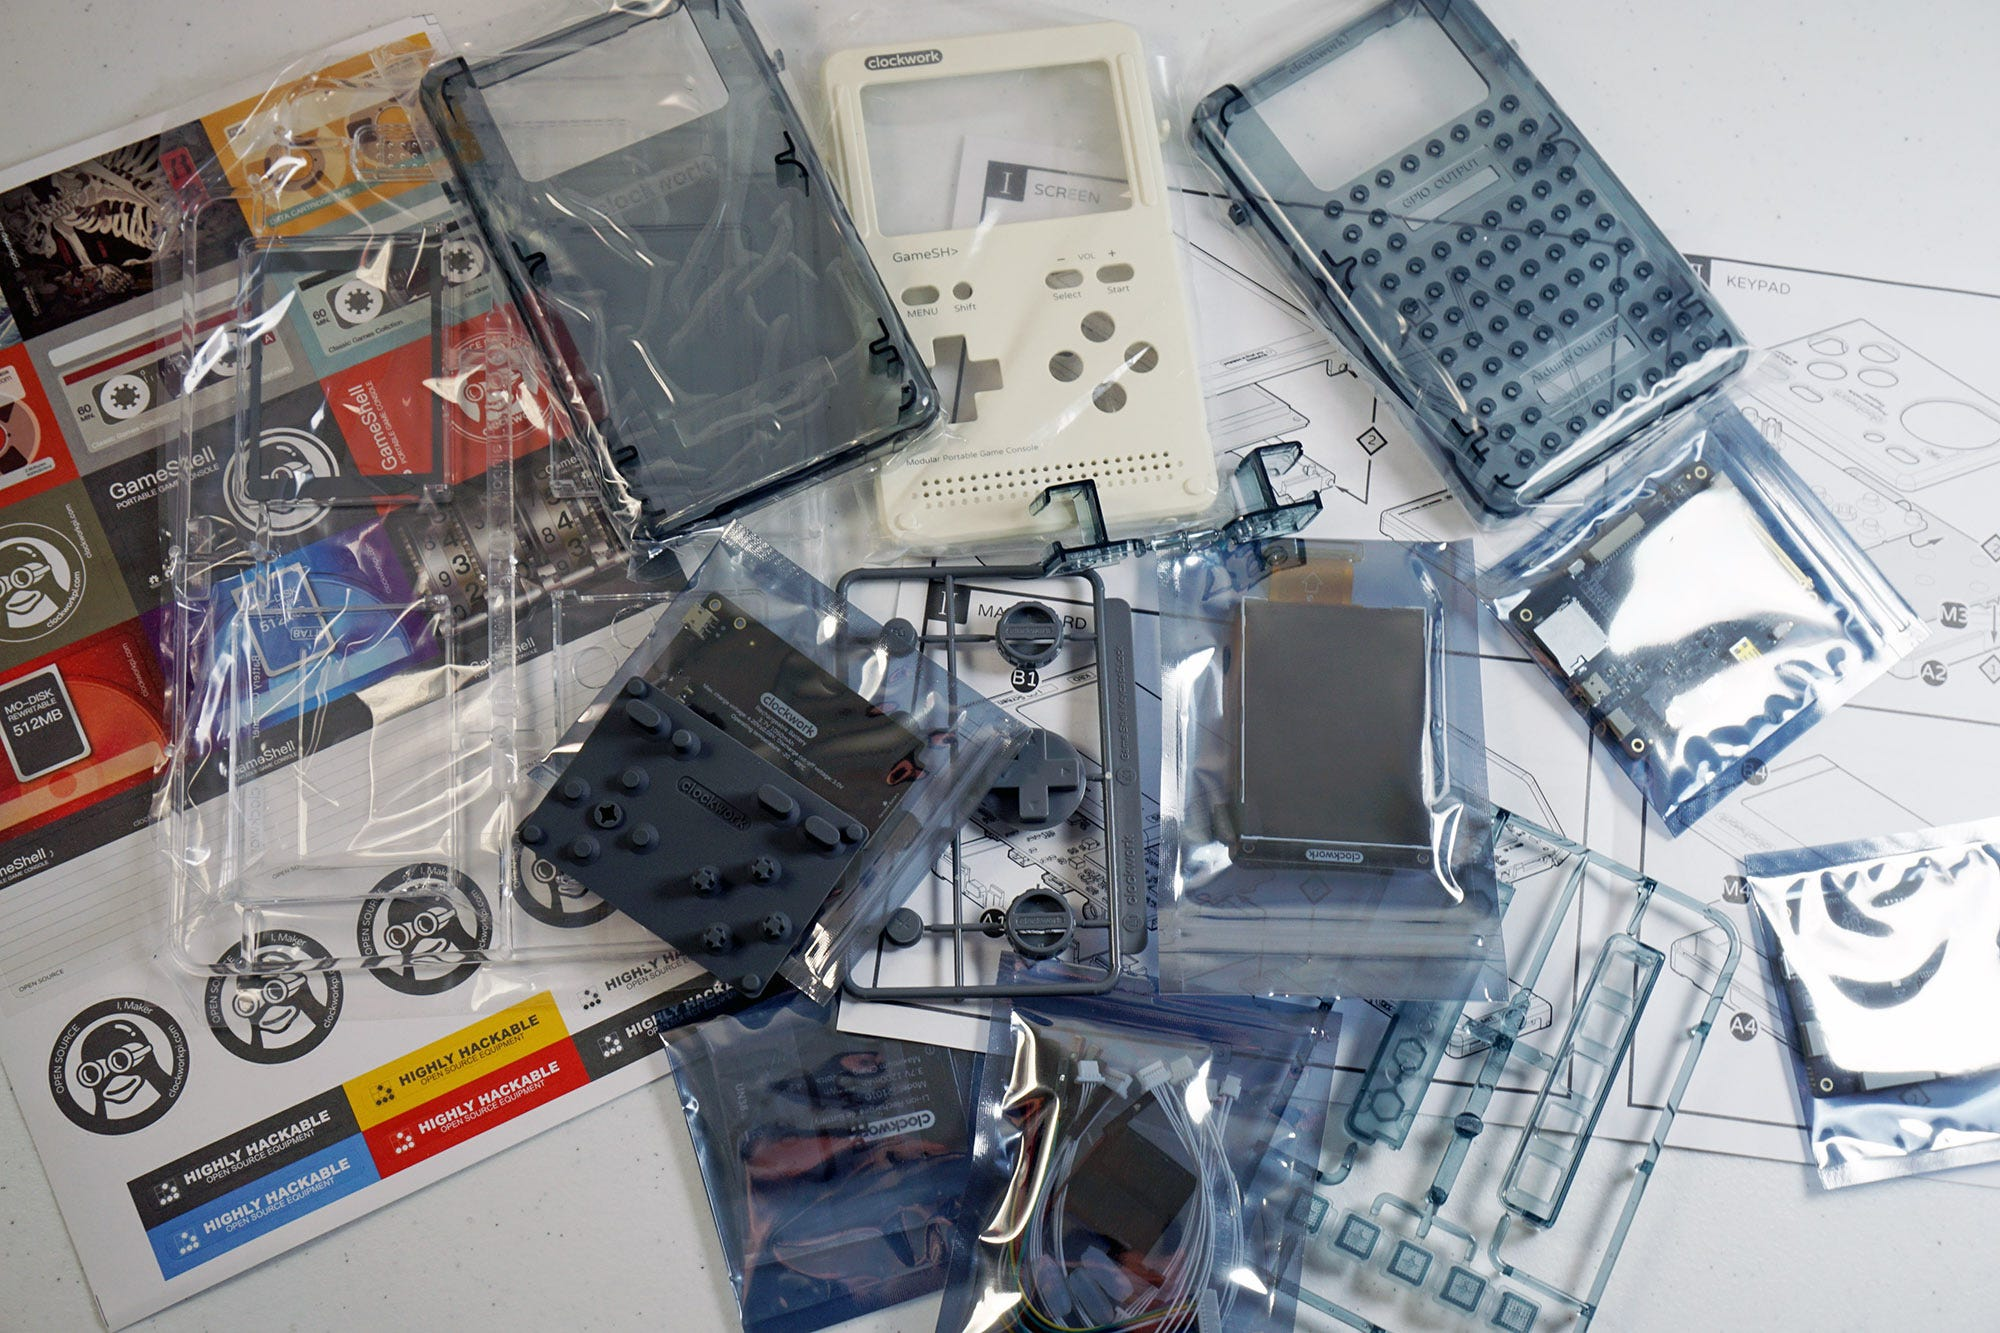 The various bits and pieces of the GameShell, prior to assembly.